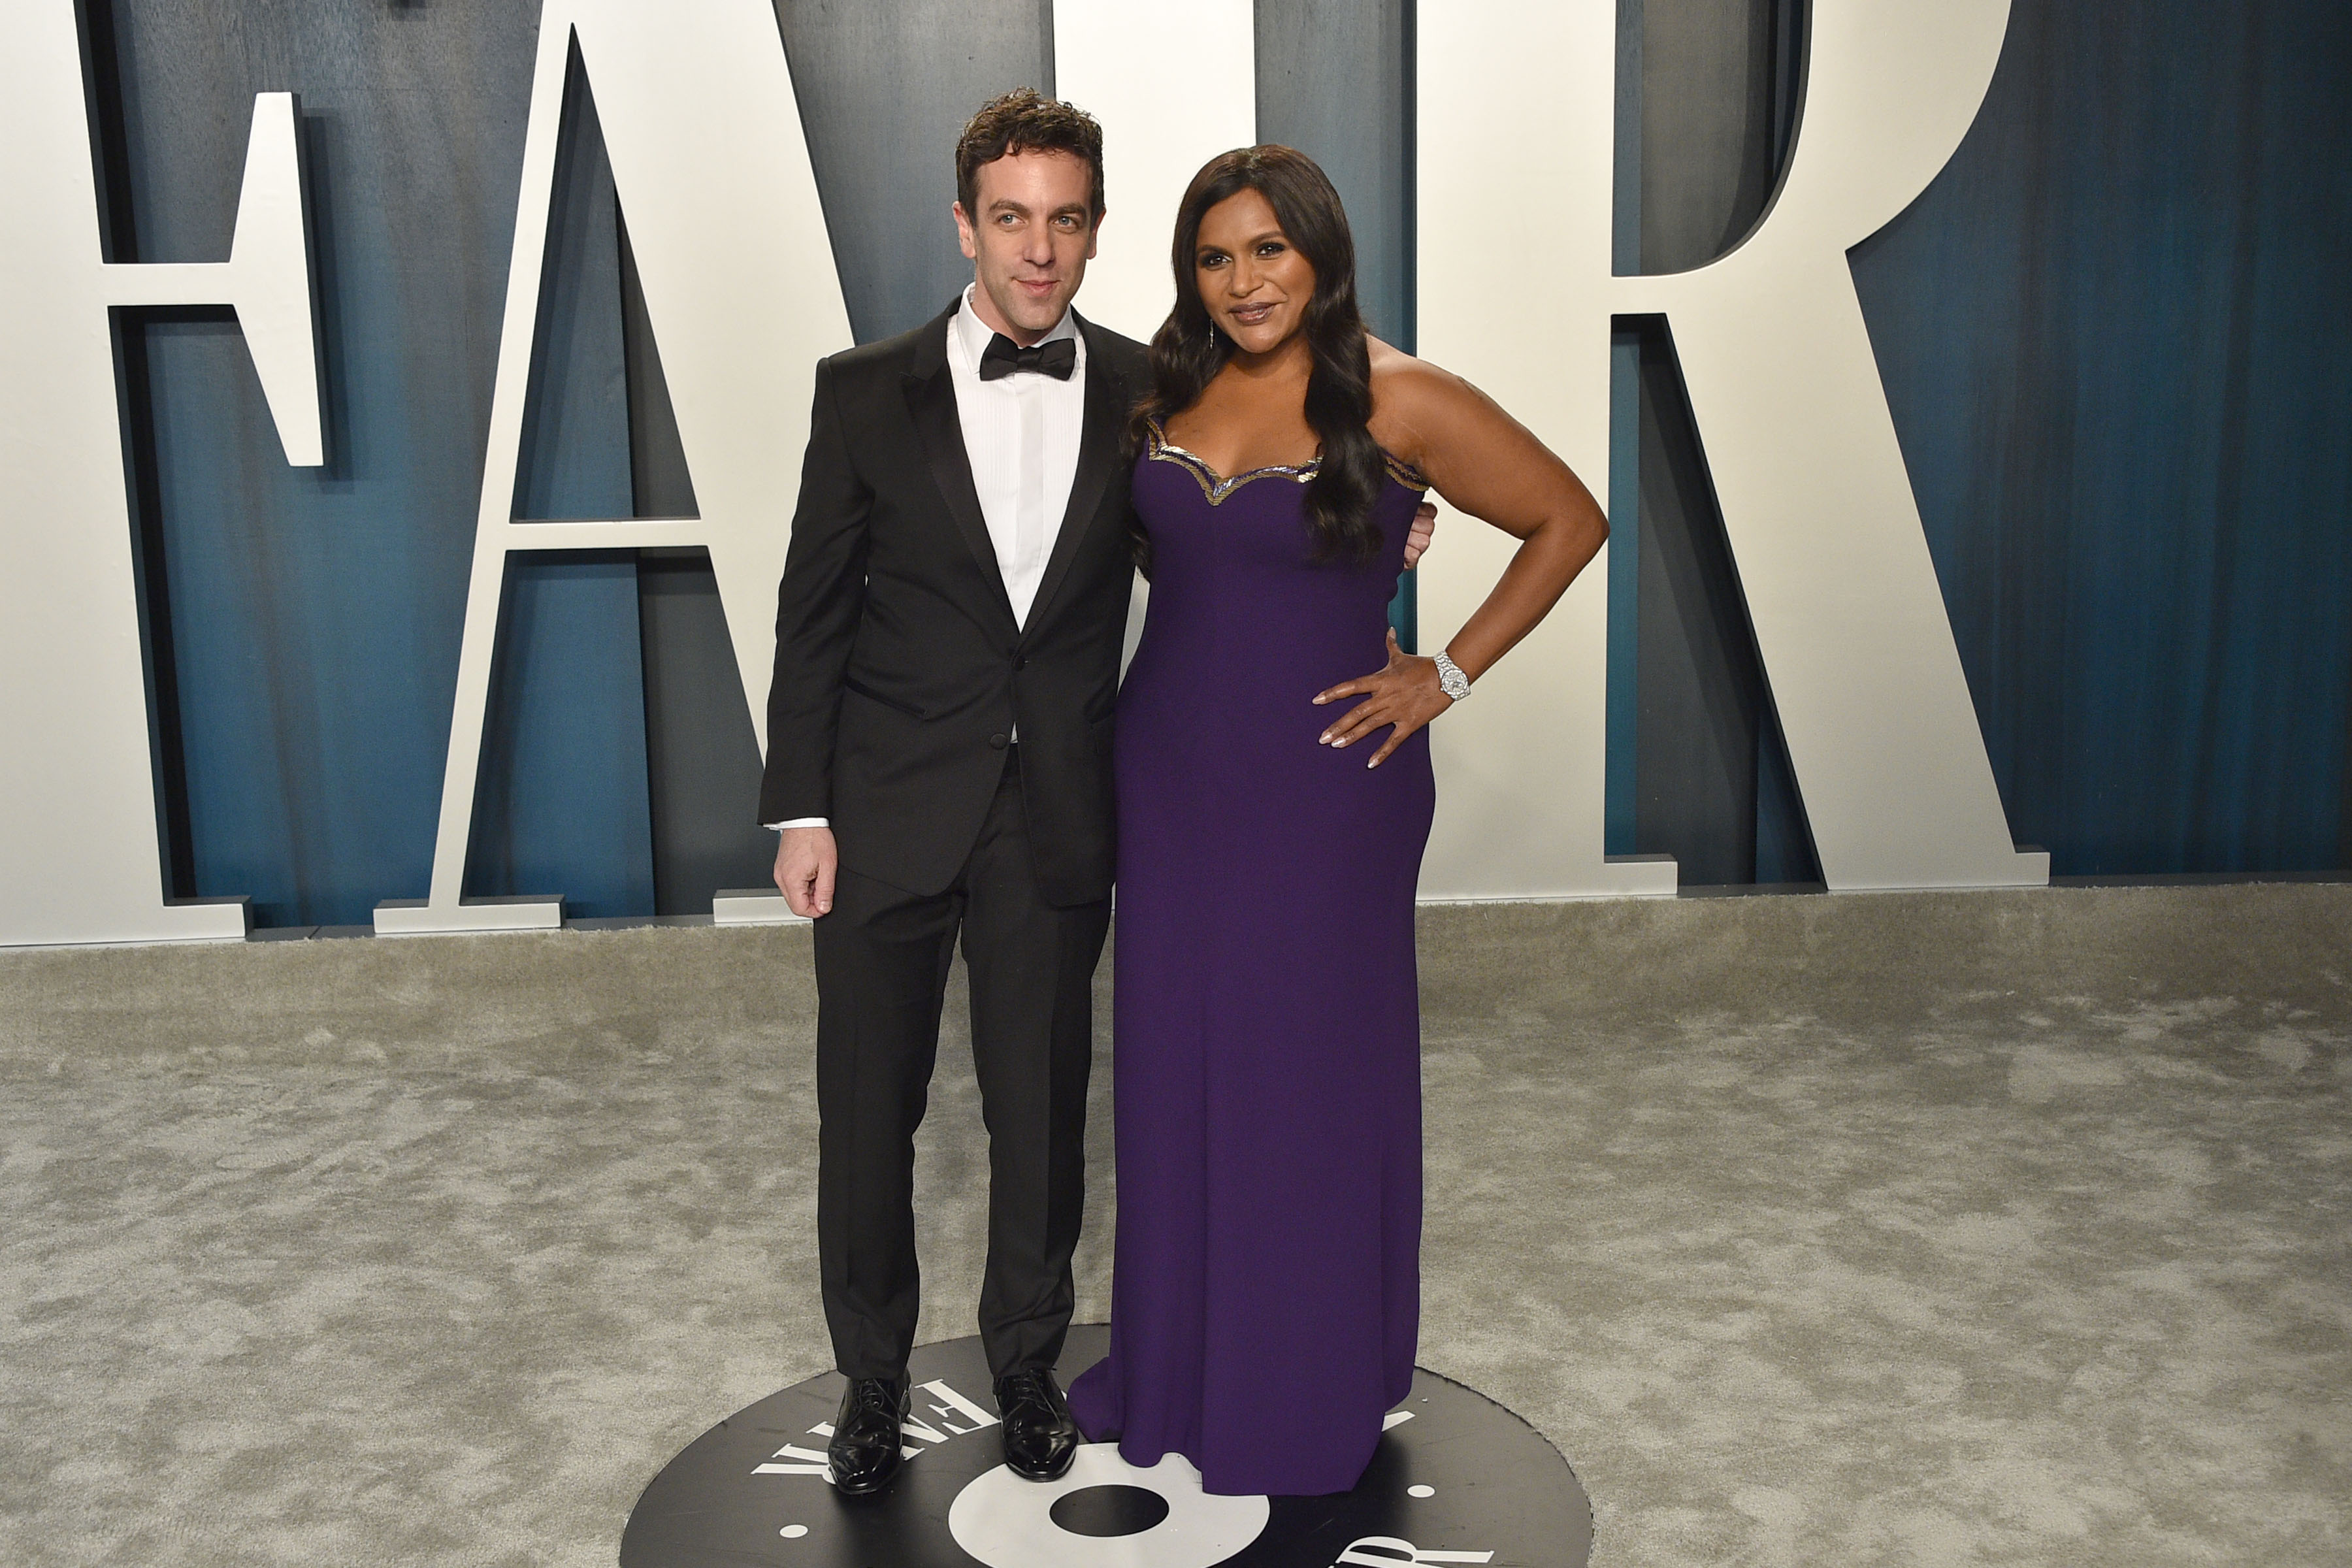 BJ Novak and Mindy Kaling attend the 2020 Vanity Fair Oscar Party at Wallis Annenberg Center for the Performing Arts on February 09, 2020 in Beverly Hills, California. (Photo by David Crotty/Patrick McMullan via Getty Images)